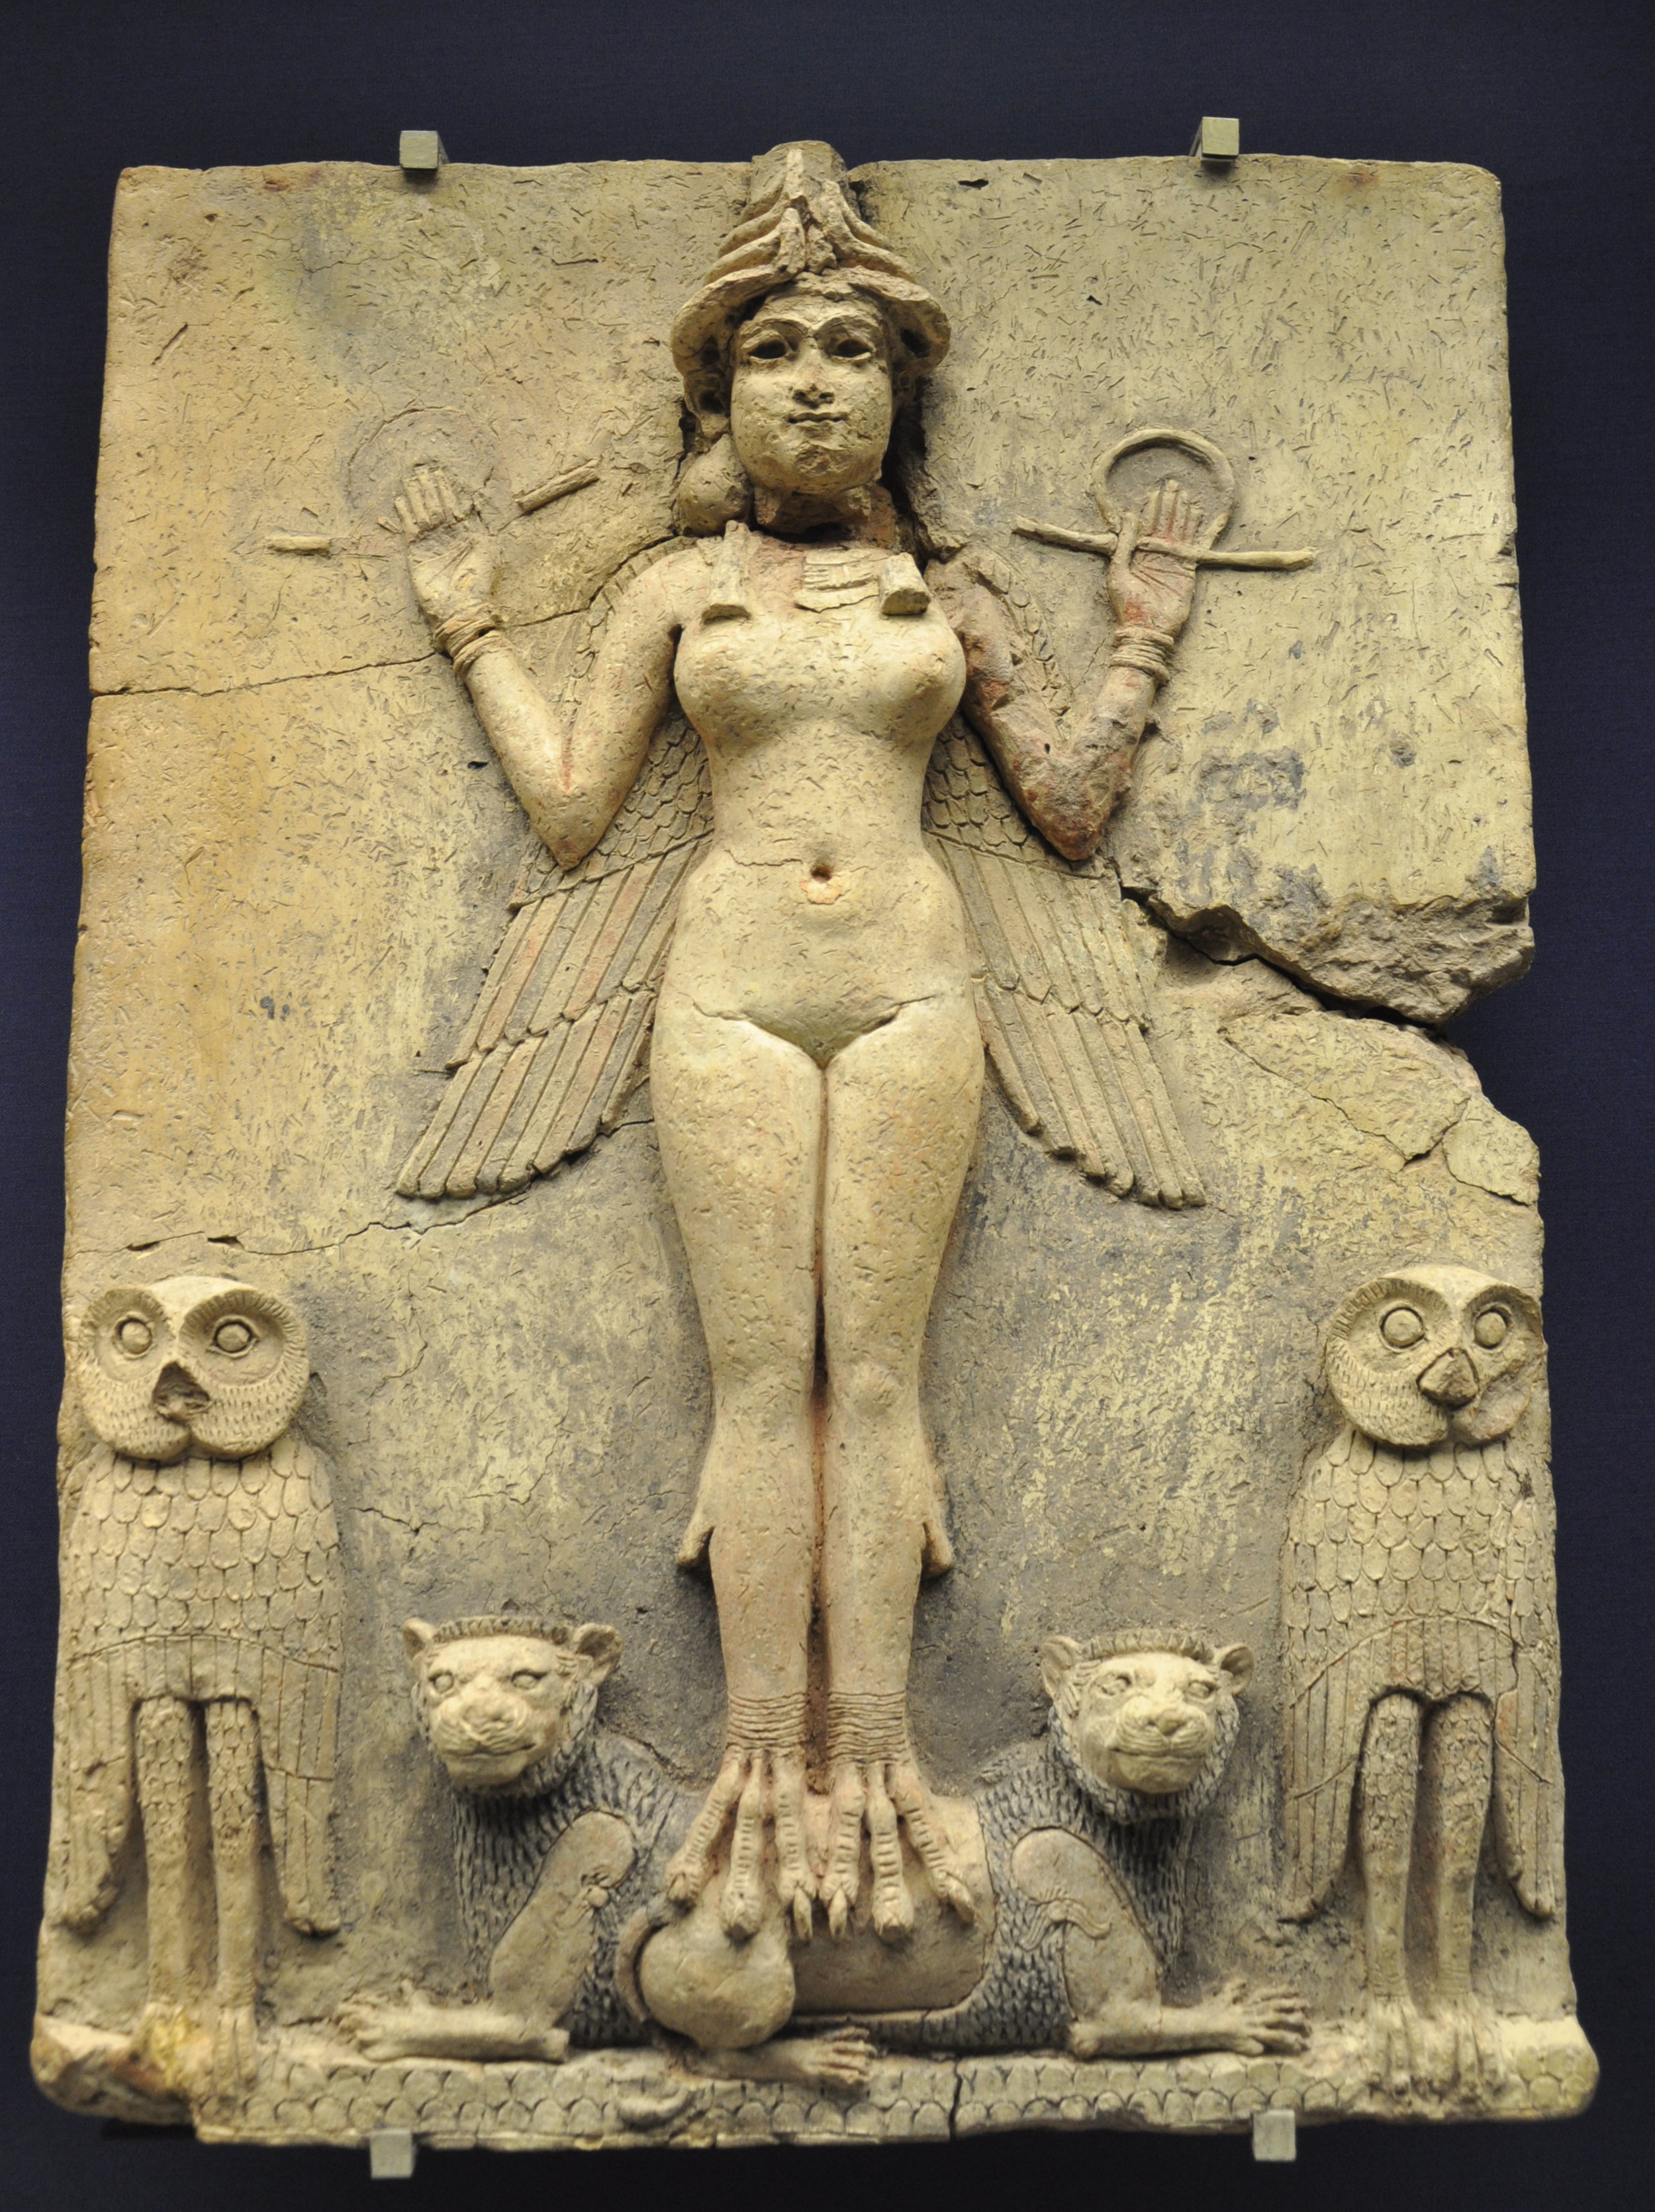 A Babylonian relief of either Ishtar or Erishkigal, the Sumerian queens of Heaven and the underworld. Lillith was handmaiden to Ishtar/Innana. These 3 are each part of the feminine pantheon representing the transformational process and interweaving of birth/life/death